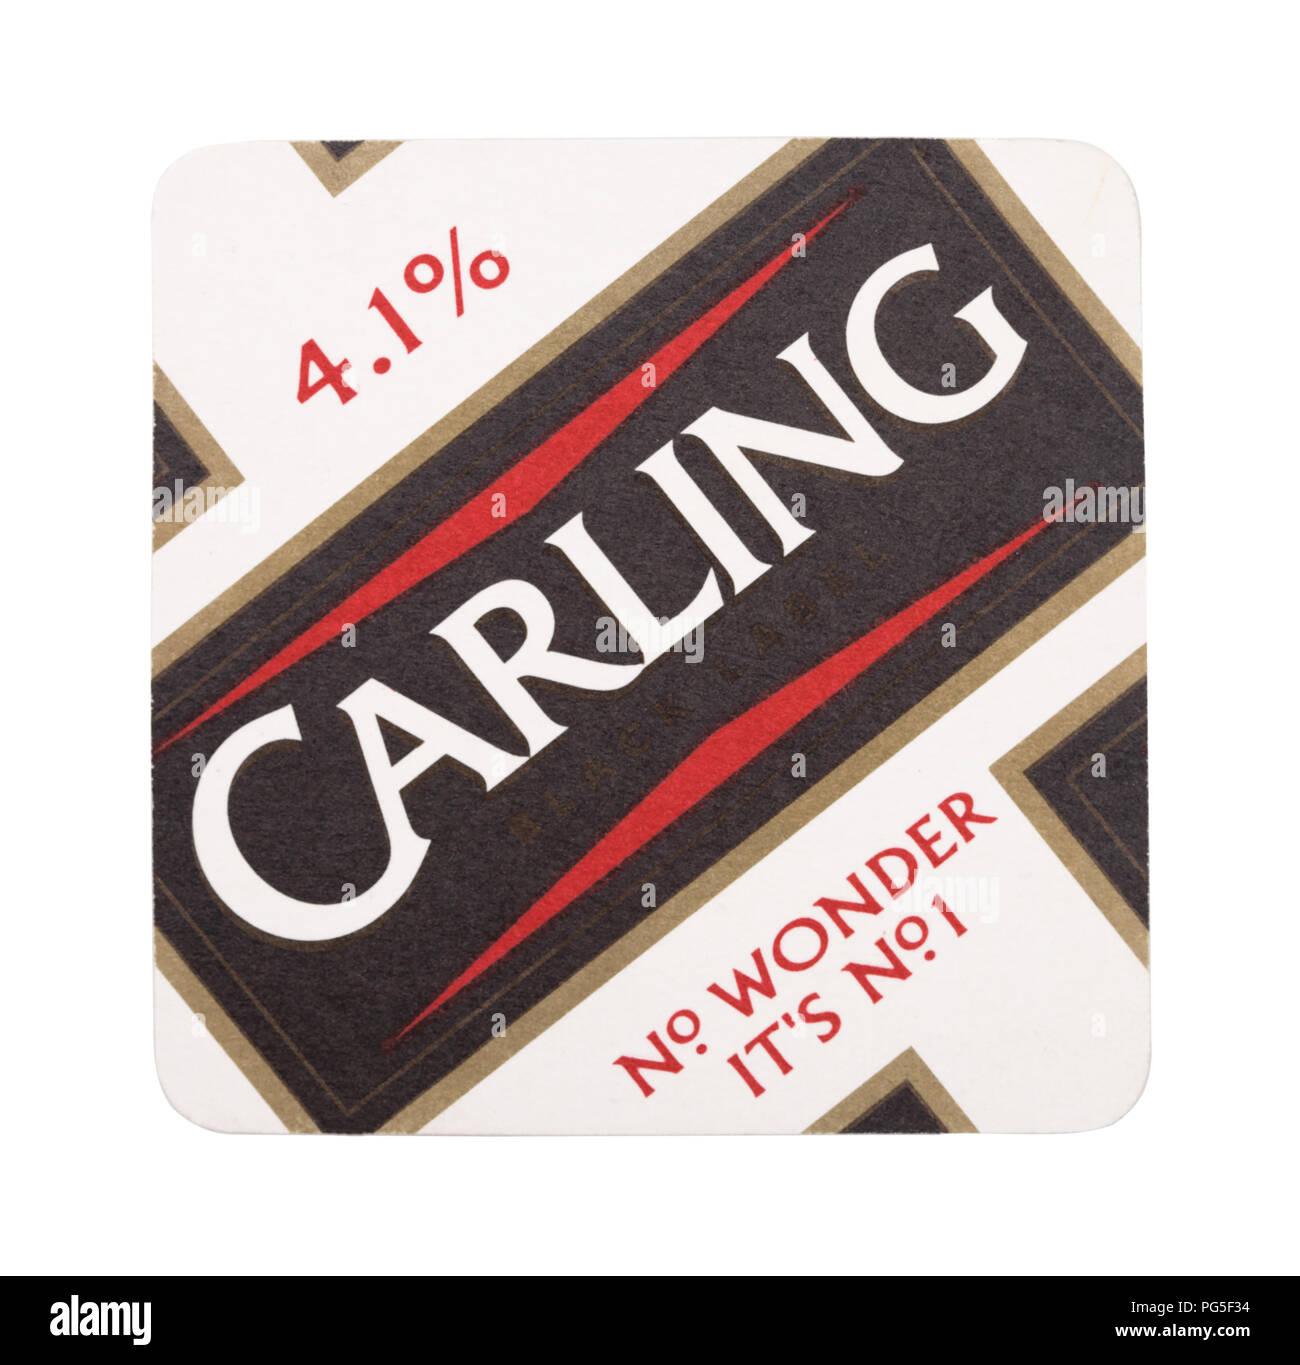 LONDON, UK - AUGUST 22, 2018: Carling lager paper beer beermat coaster isolated on white background. - Stock Image